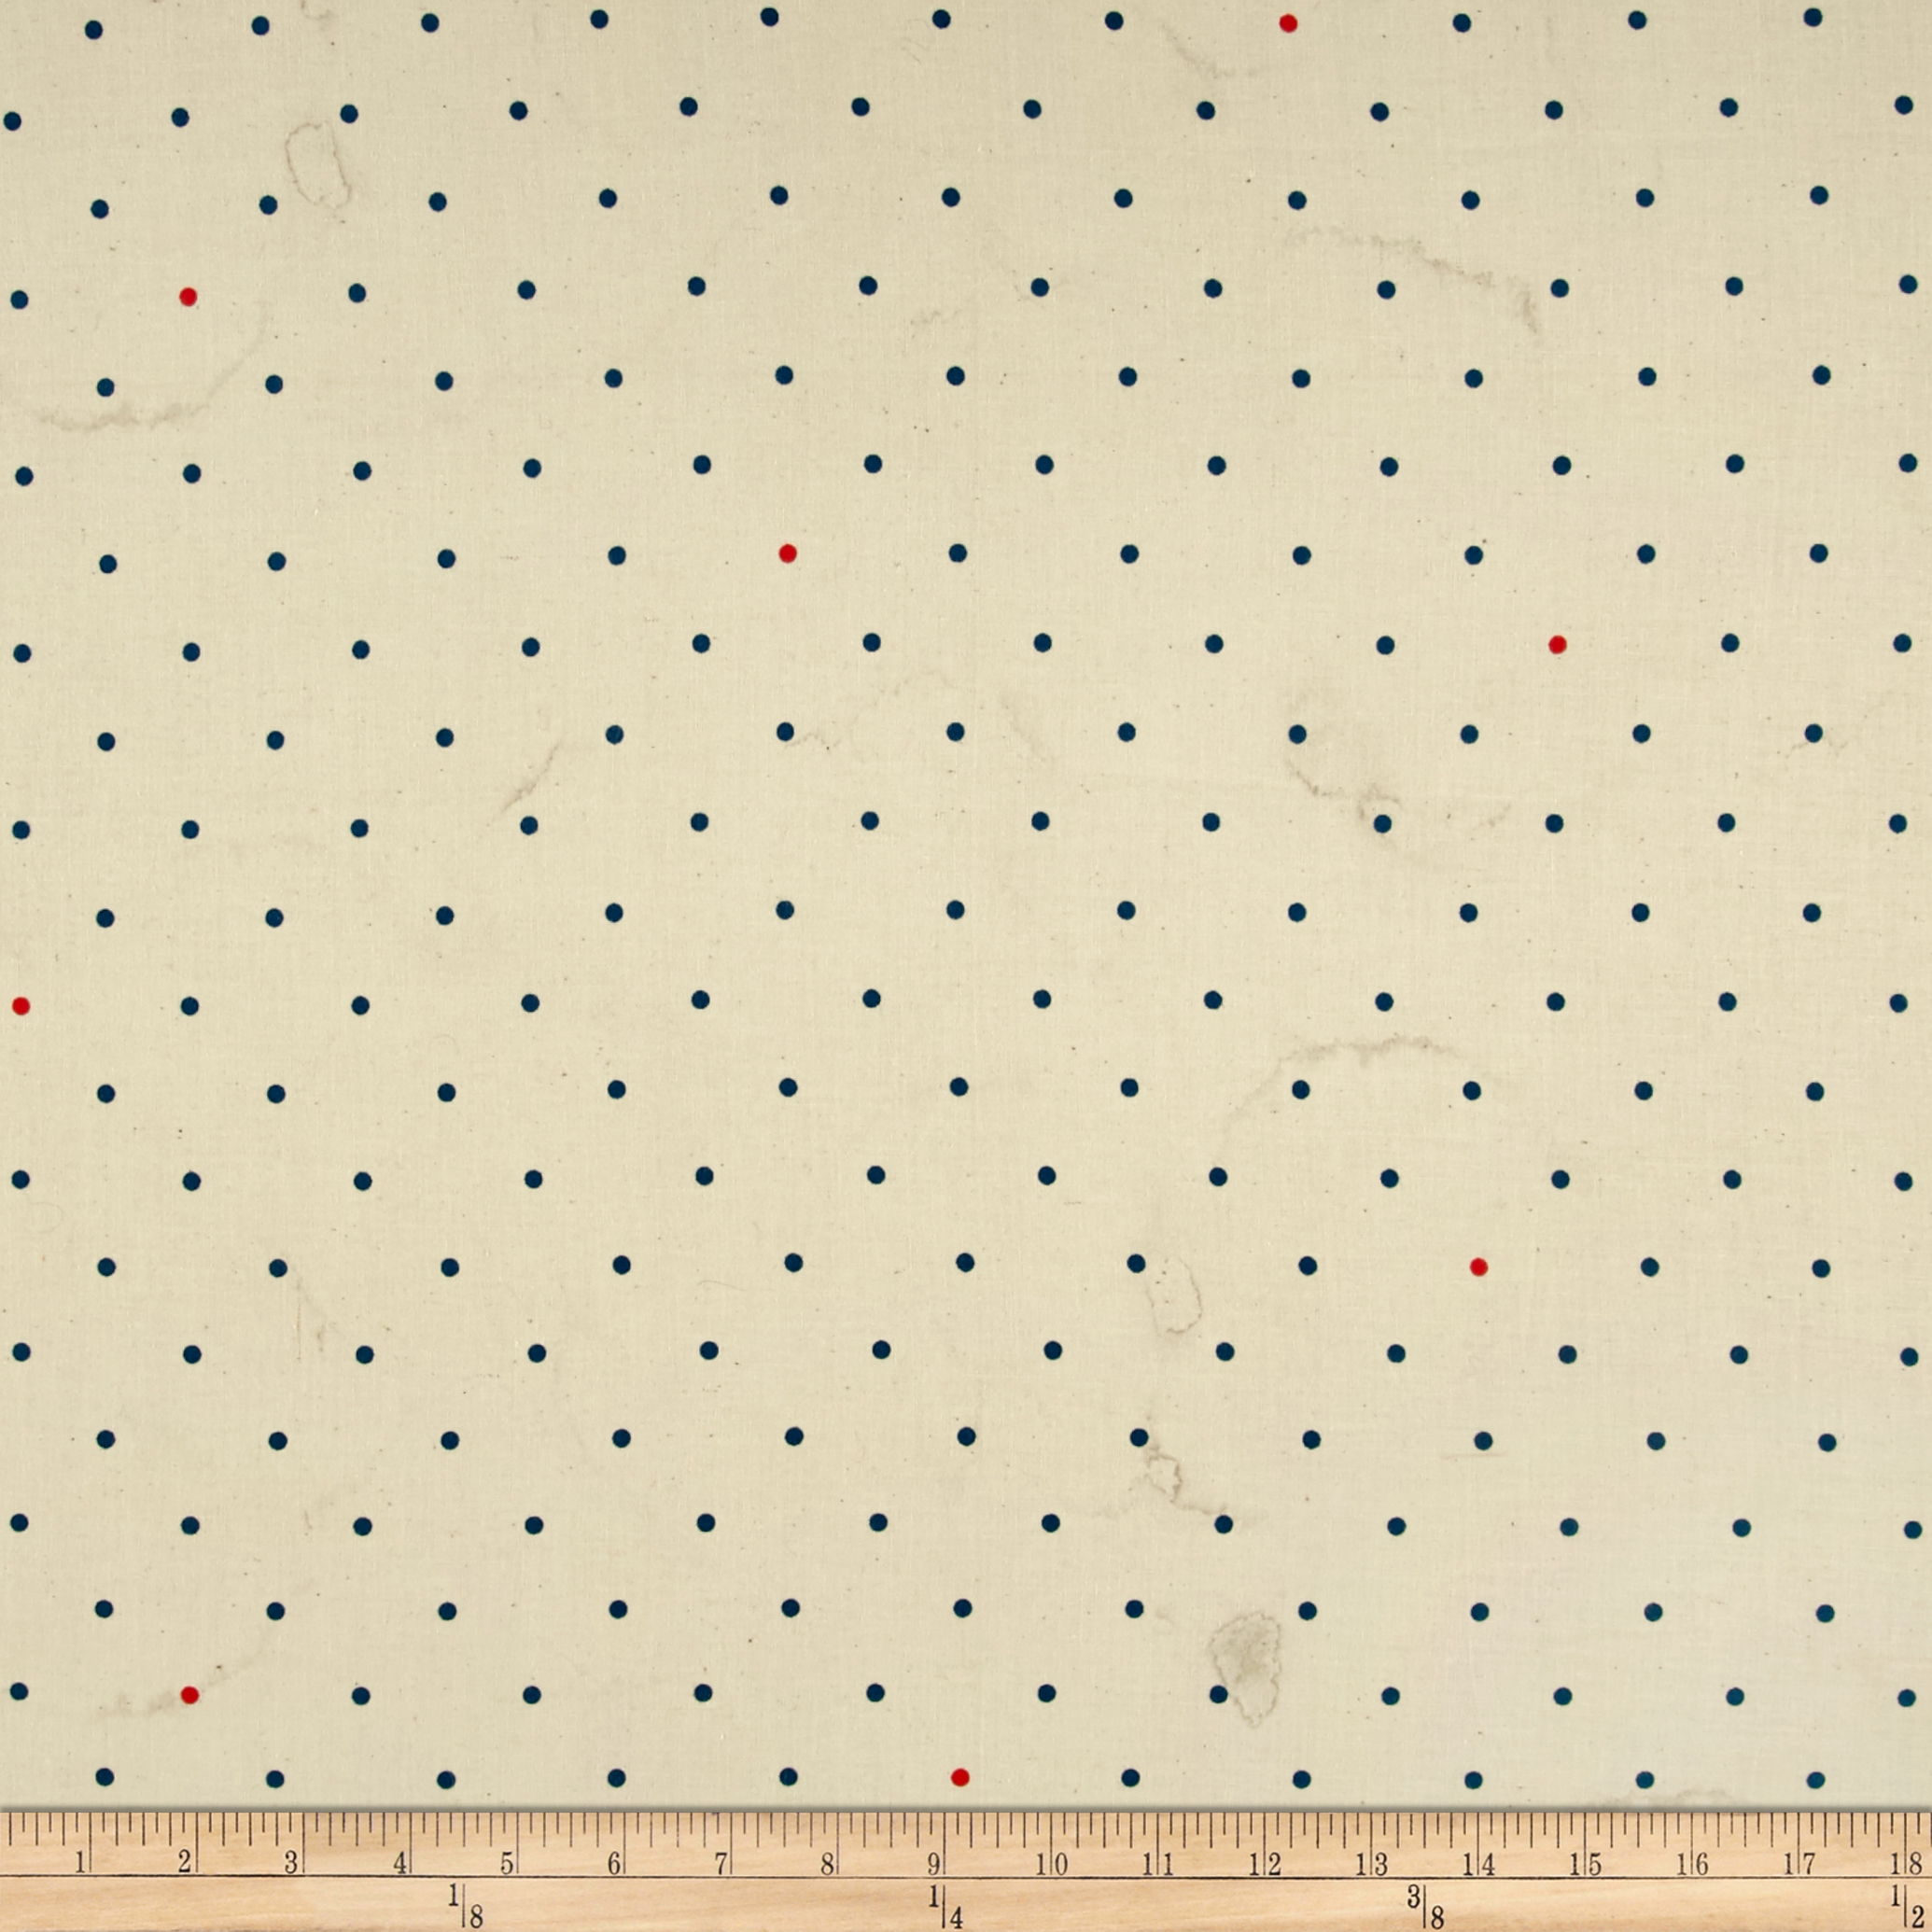 Cotton & Steel Bluebird Tea Stained Dots Ivory Fabric by Cotton & Steel in USA